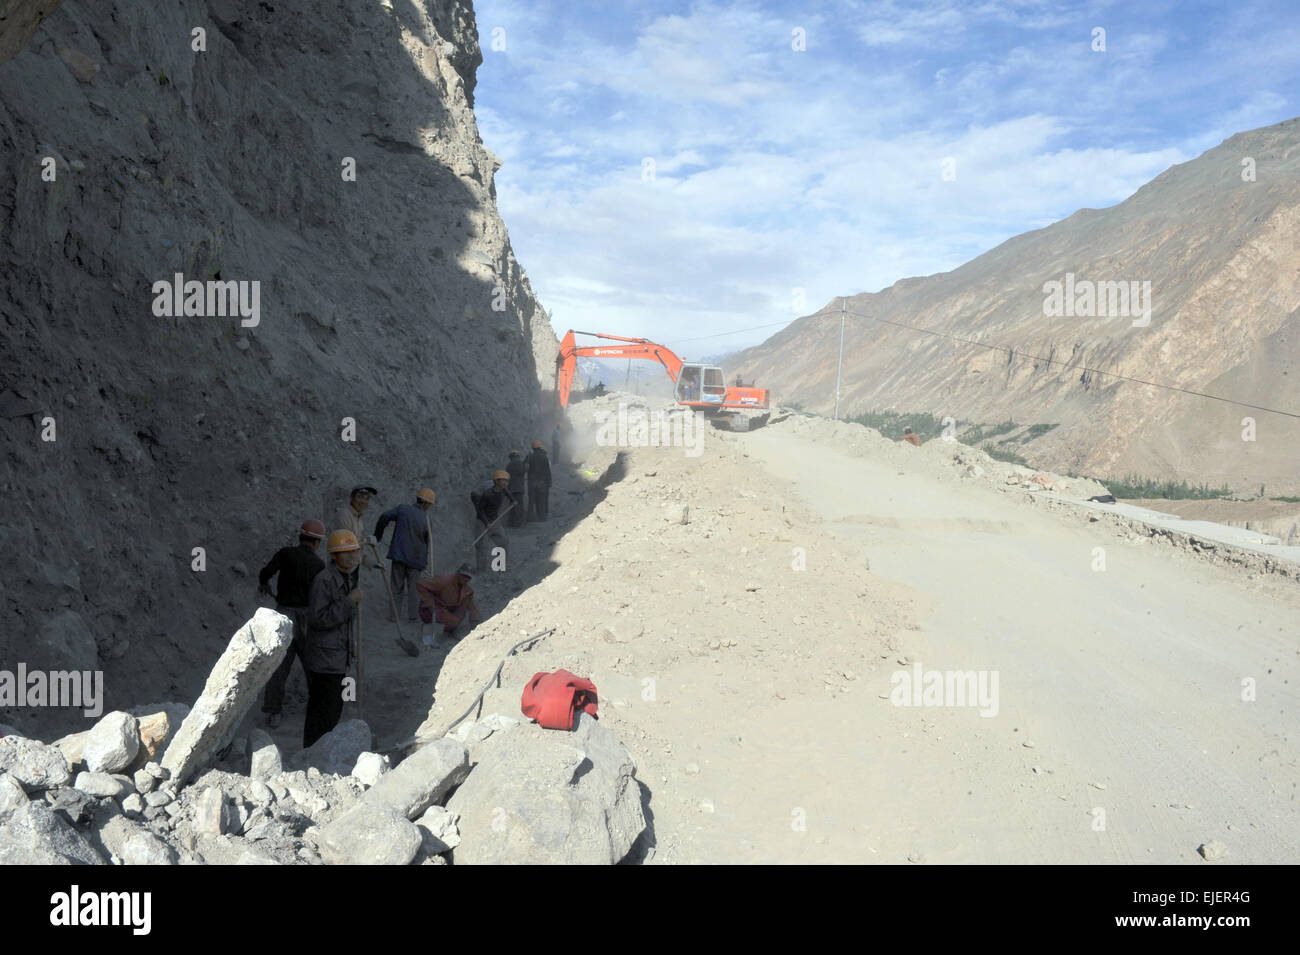 Chinese laborers building the Karakoram Highway connecting China's Xinjiang region with Gilgit–Baltistan region - Stock Image